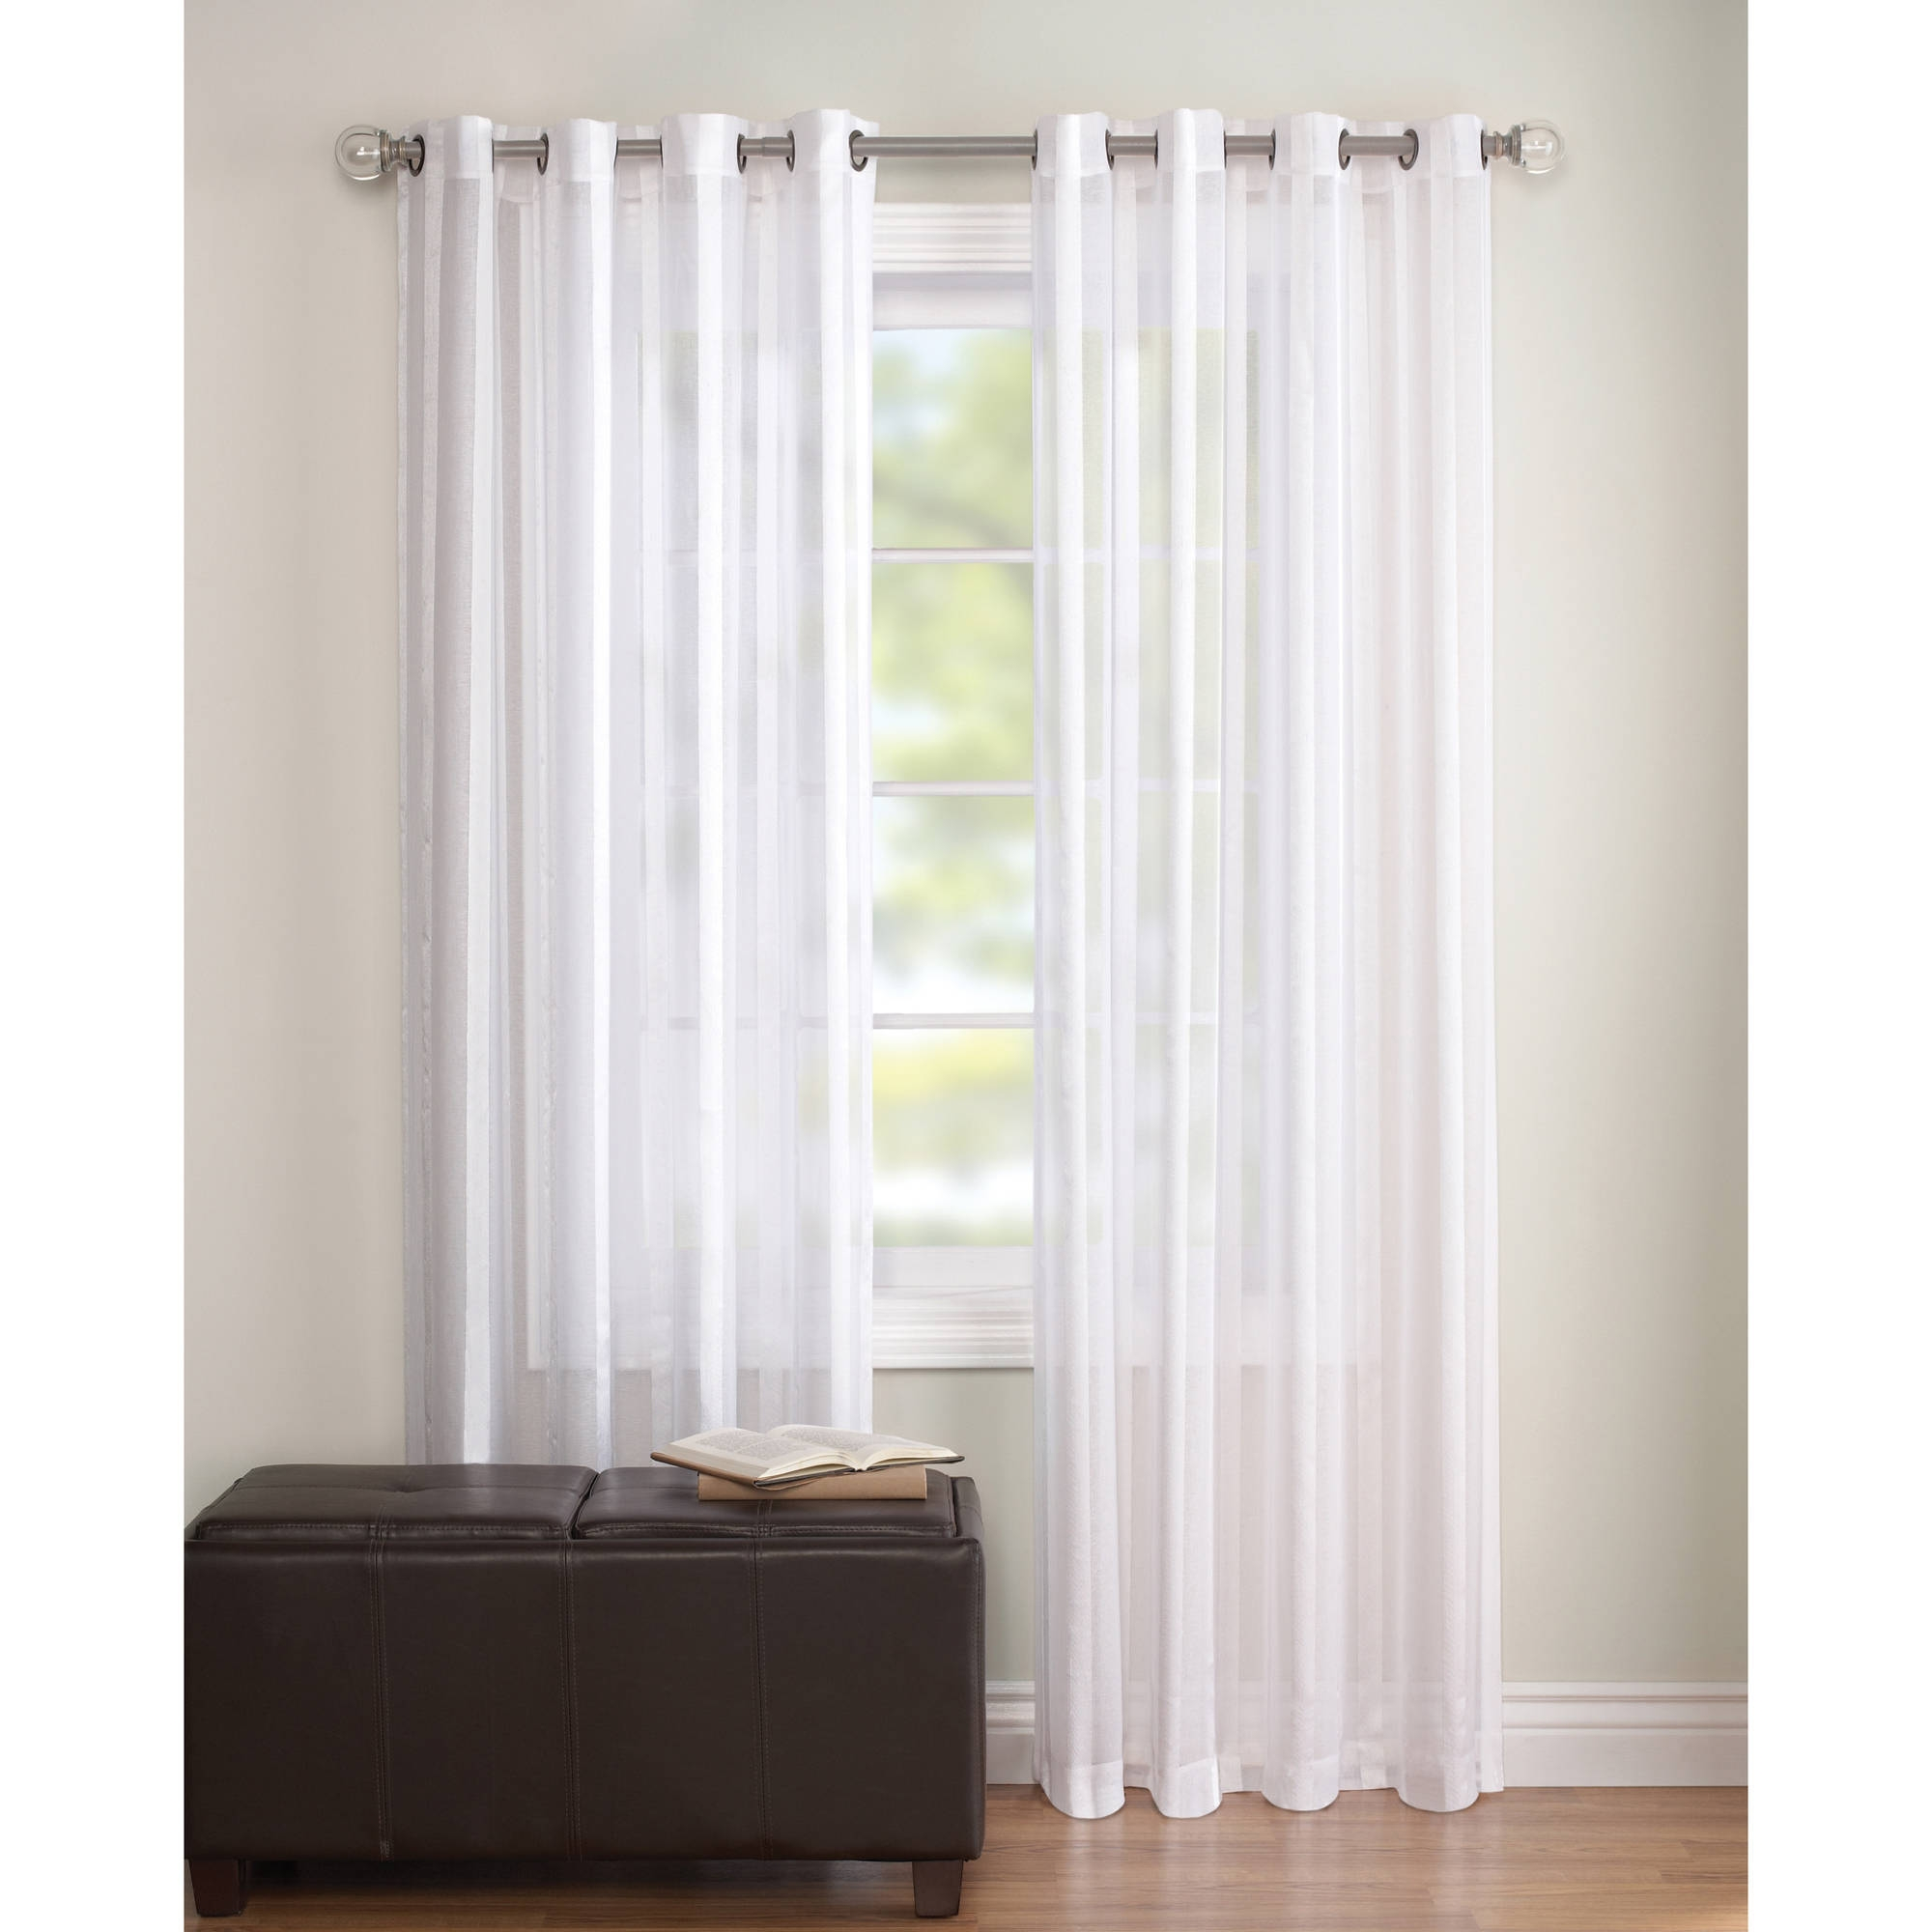 Featured Image of Curtain Sheers